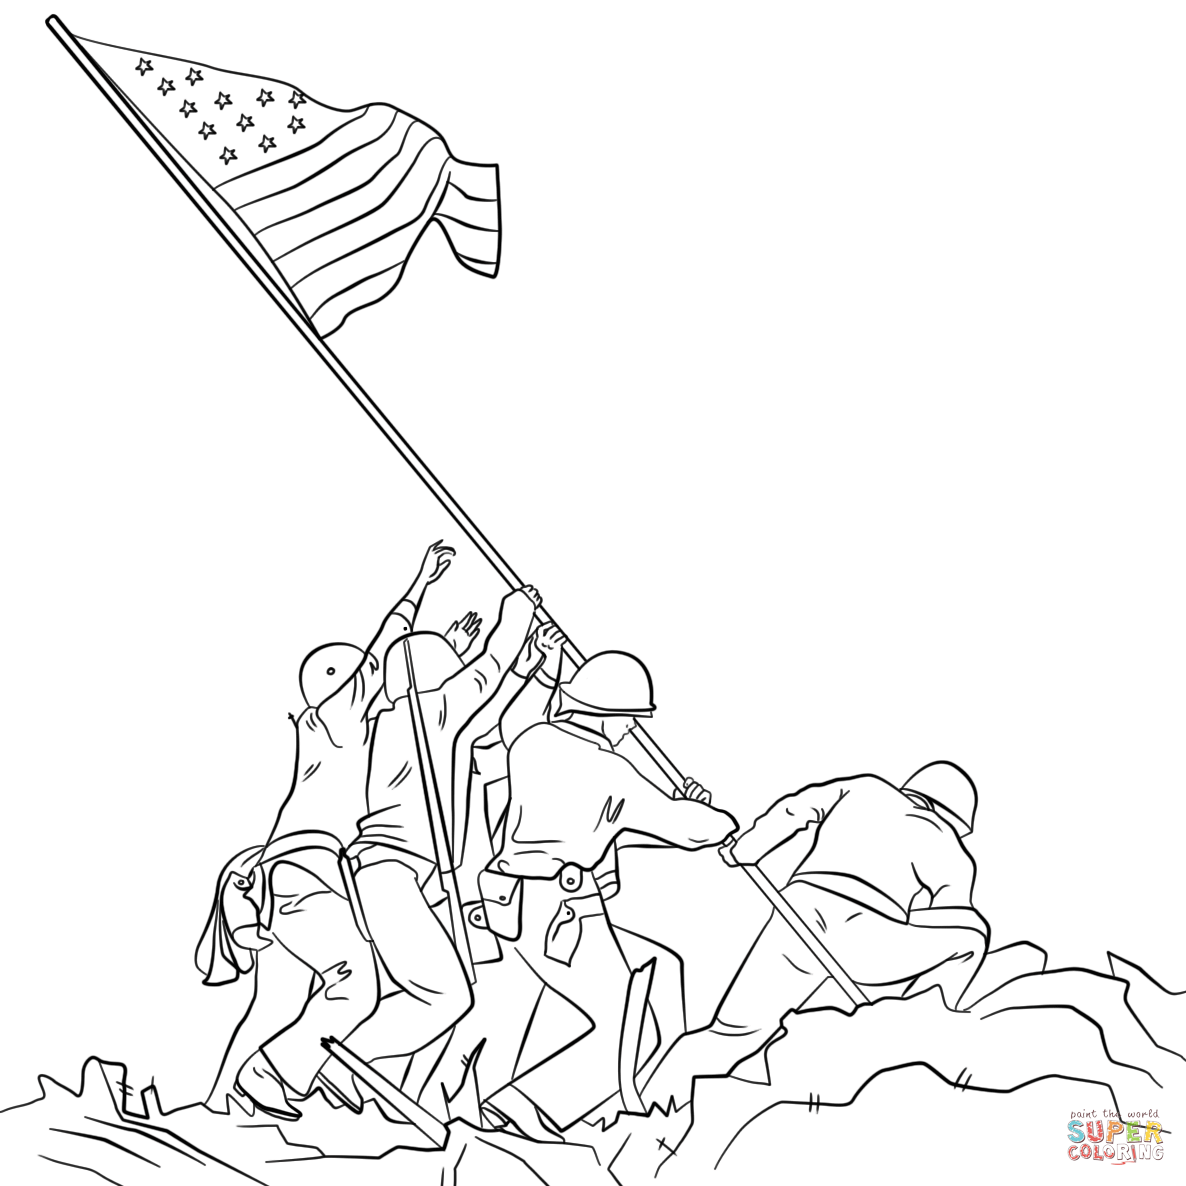 1186x1186 Raising The Flag On Iwo Jima Coloring Page Free Printable